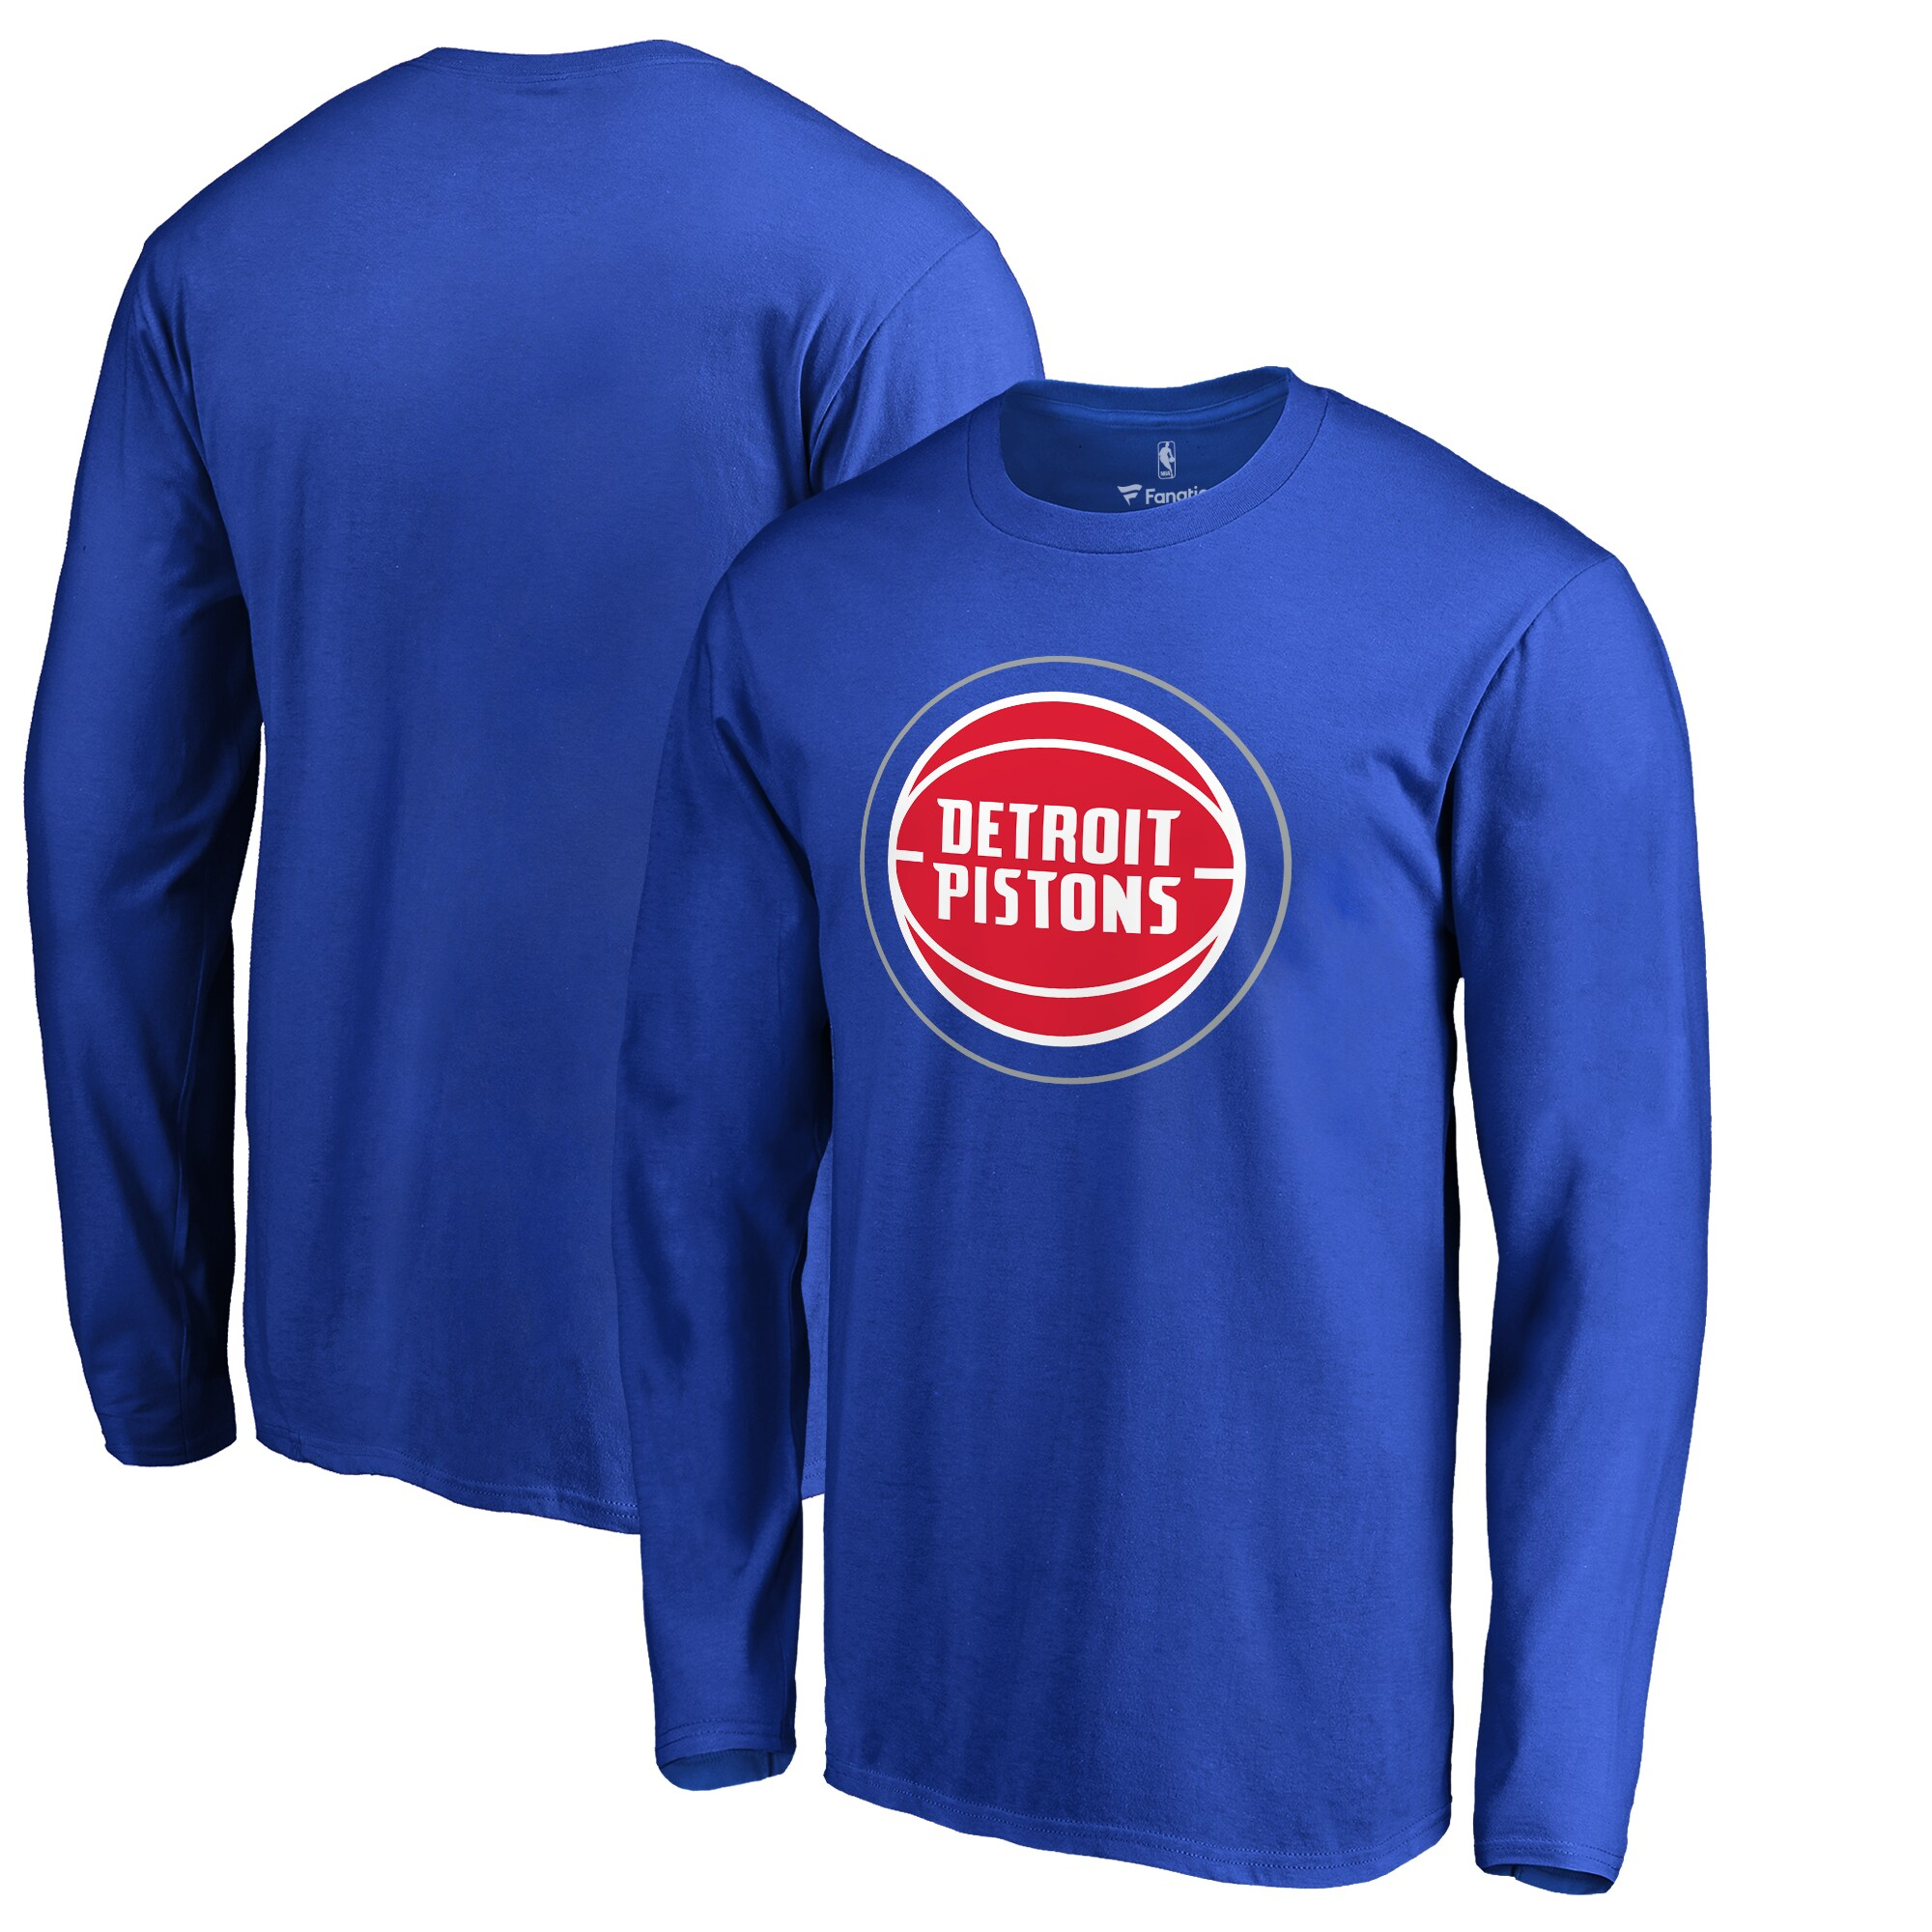 Detroit Pistons Fanatics Branded Big & Tall Primary Logo Long Sleeve T-Shirt - Blue